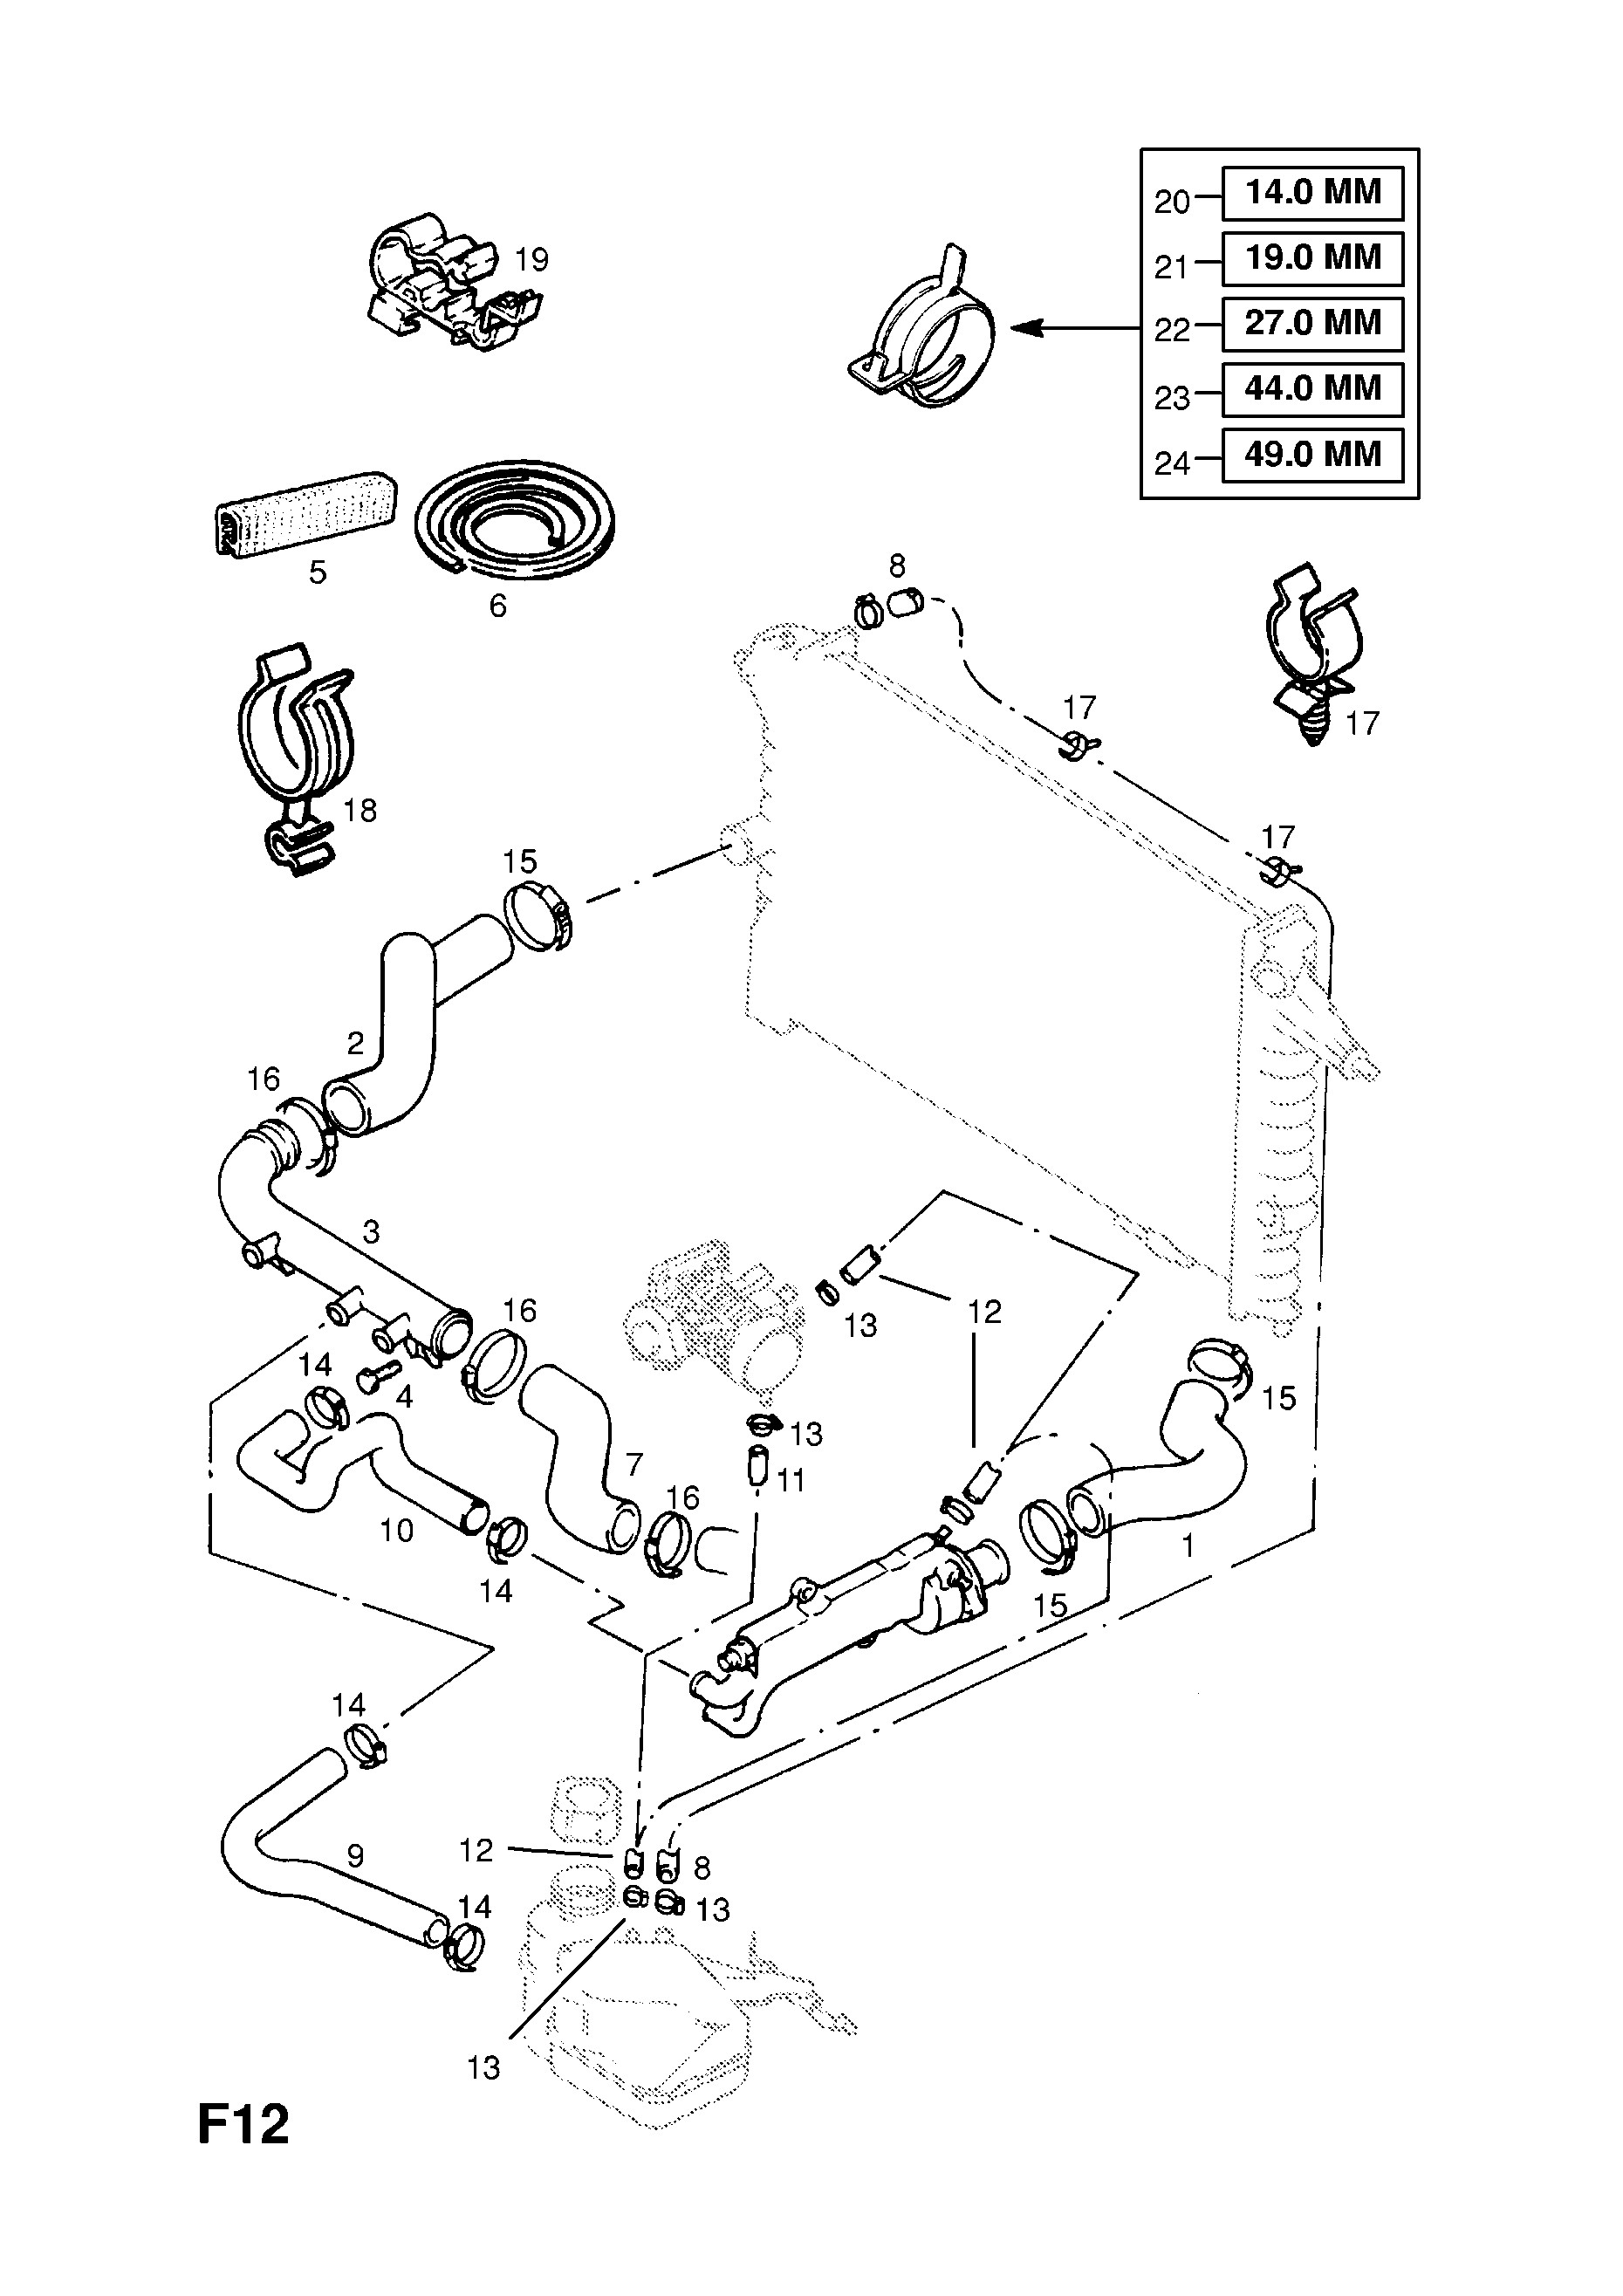 1995 Ford Aerostar Engine Diagram